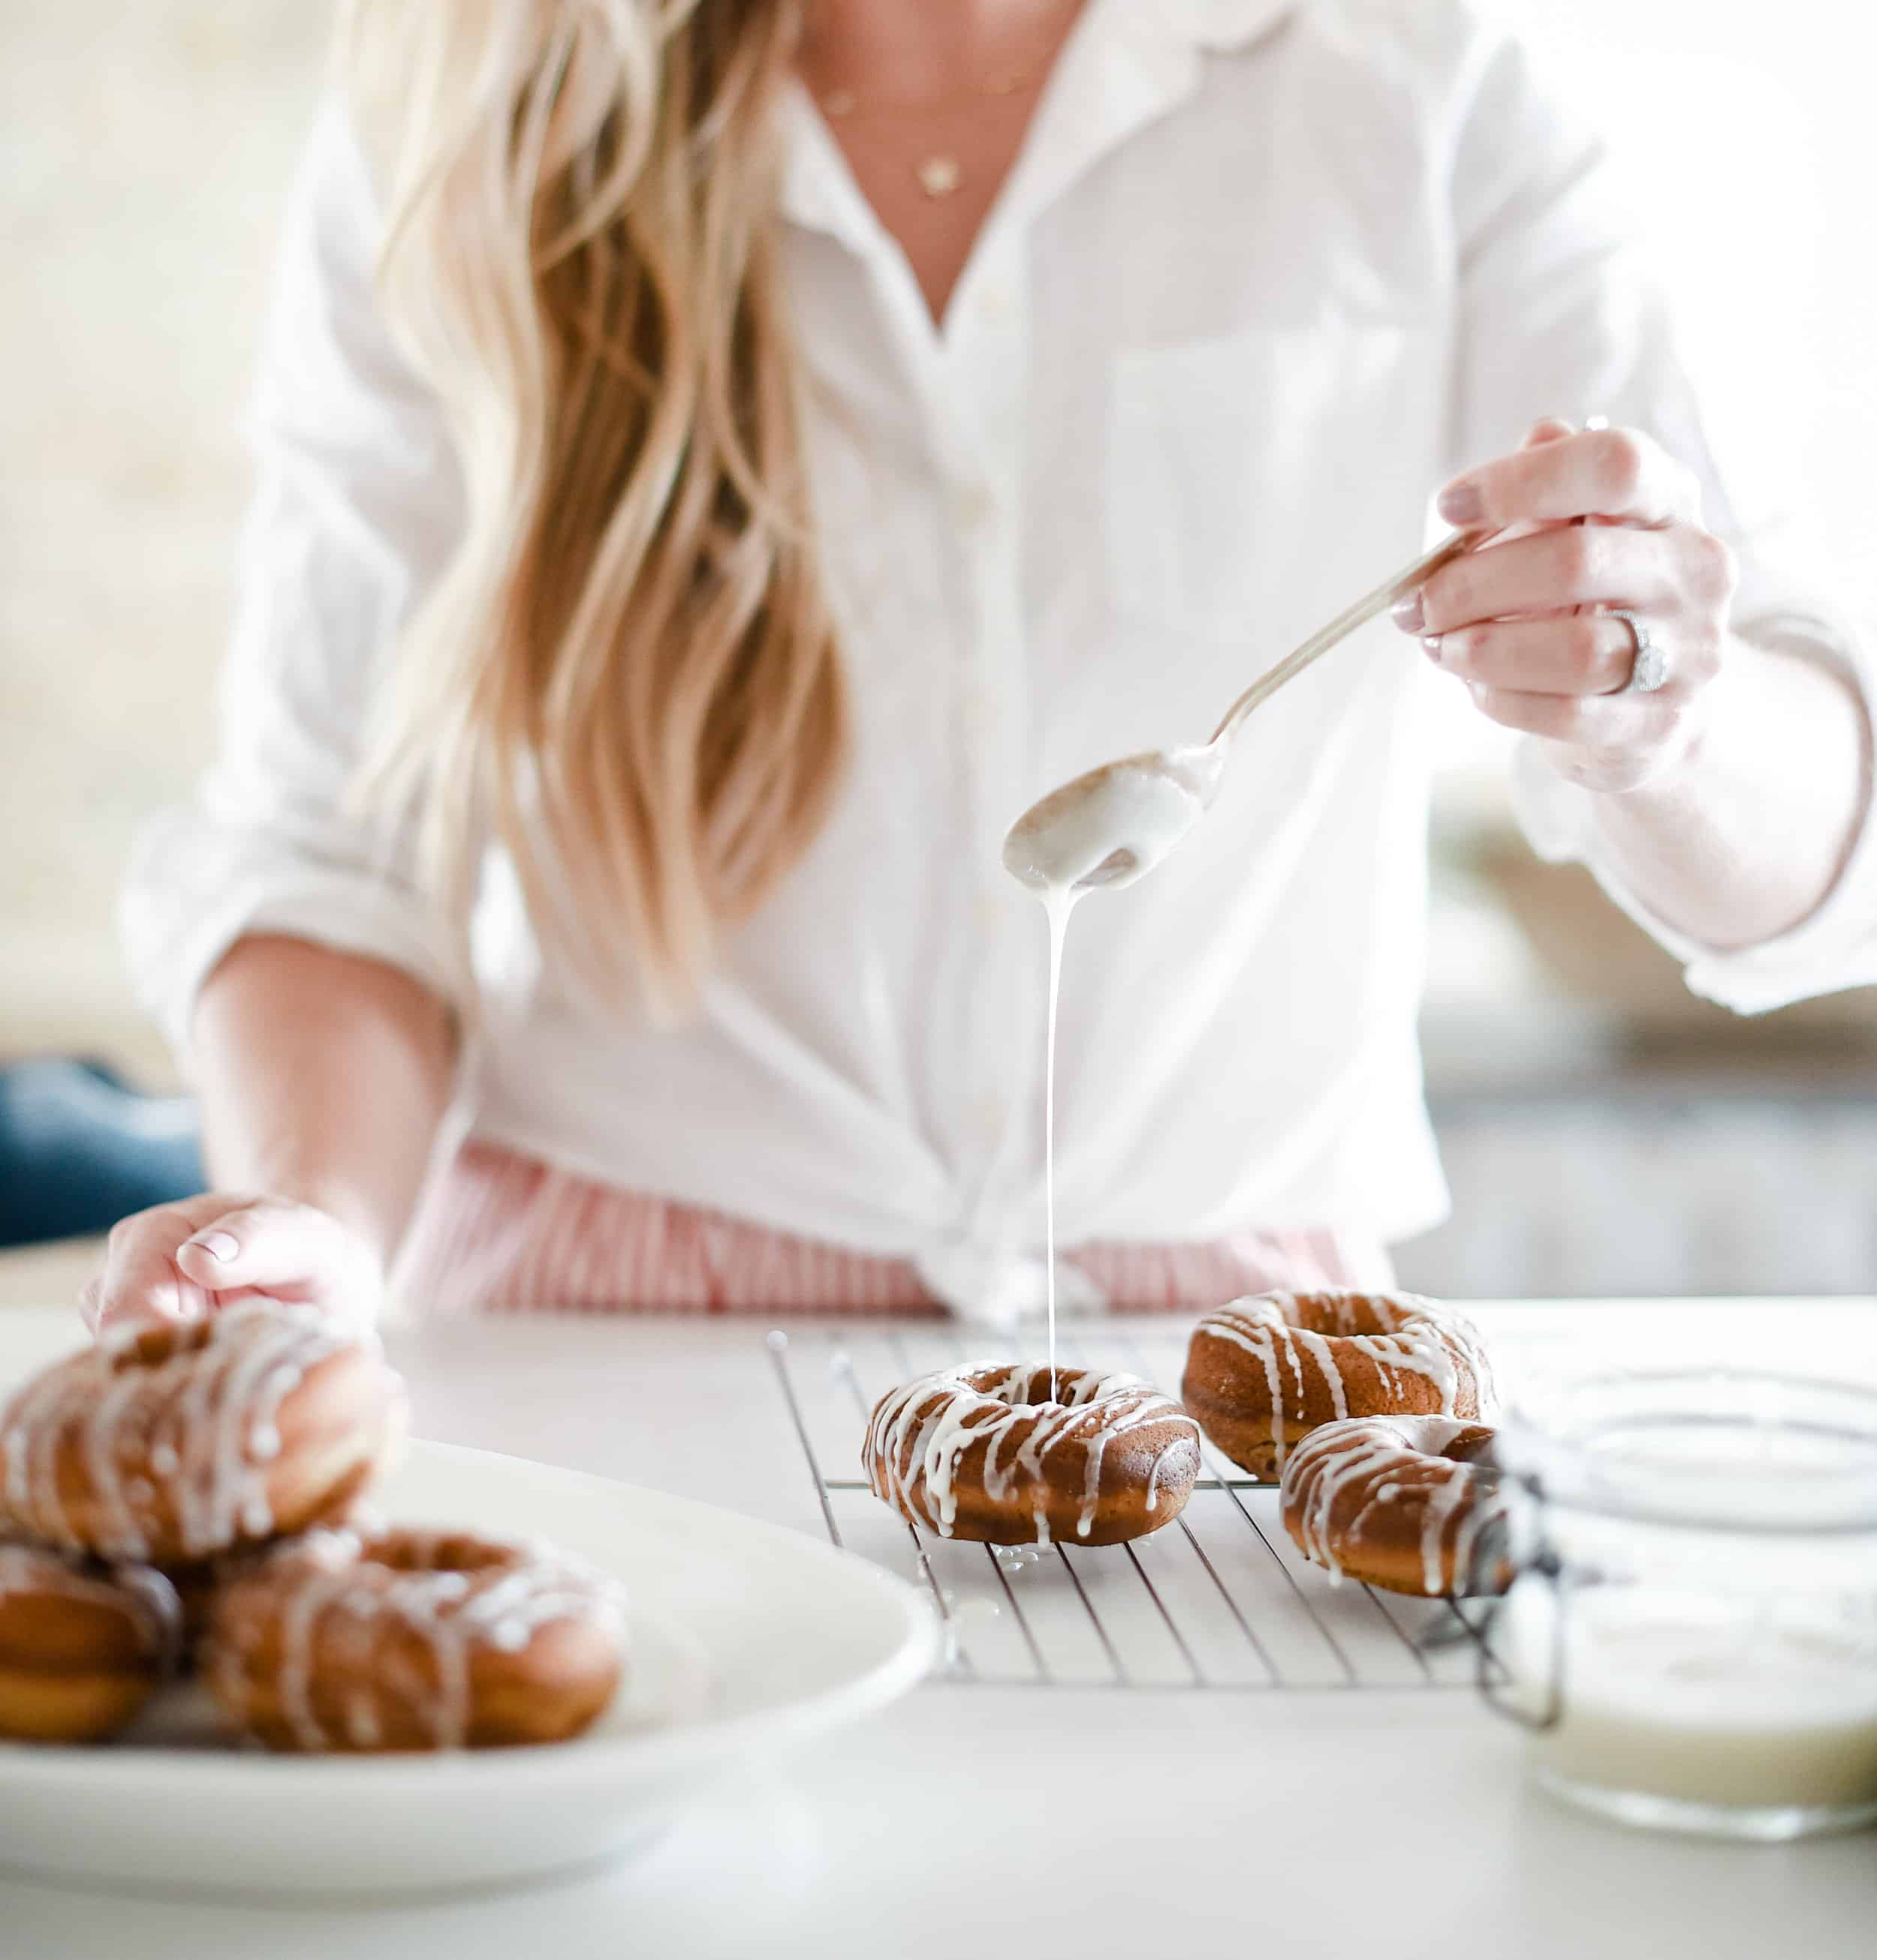 Fall is right around the corner, and that means it's time to break out the pumpkin recipes! Here are 20 delicious recipes to give a whirl this season – like these baked pumpkin donuts! Will you find a new favorite?